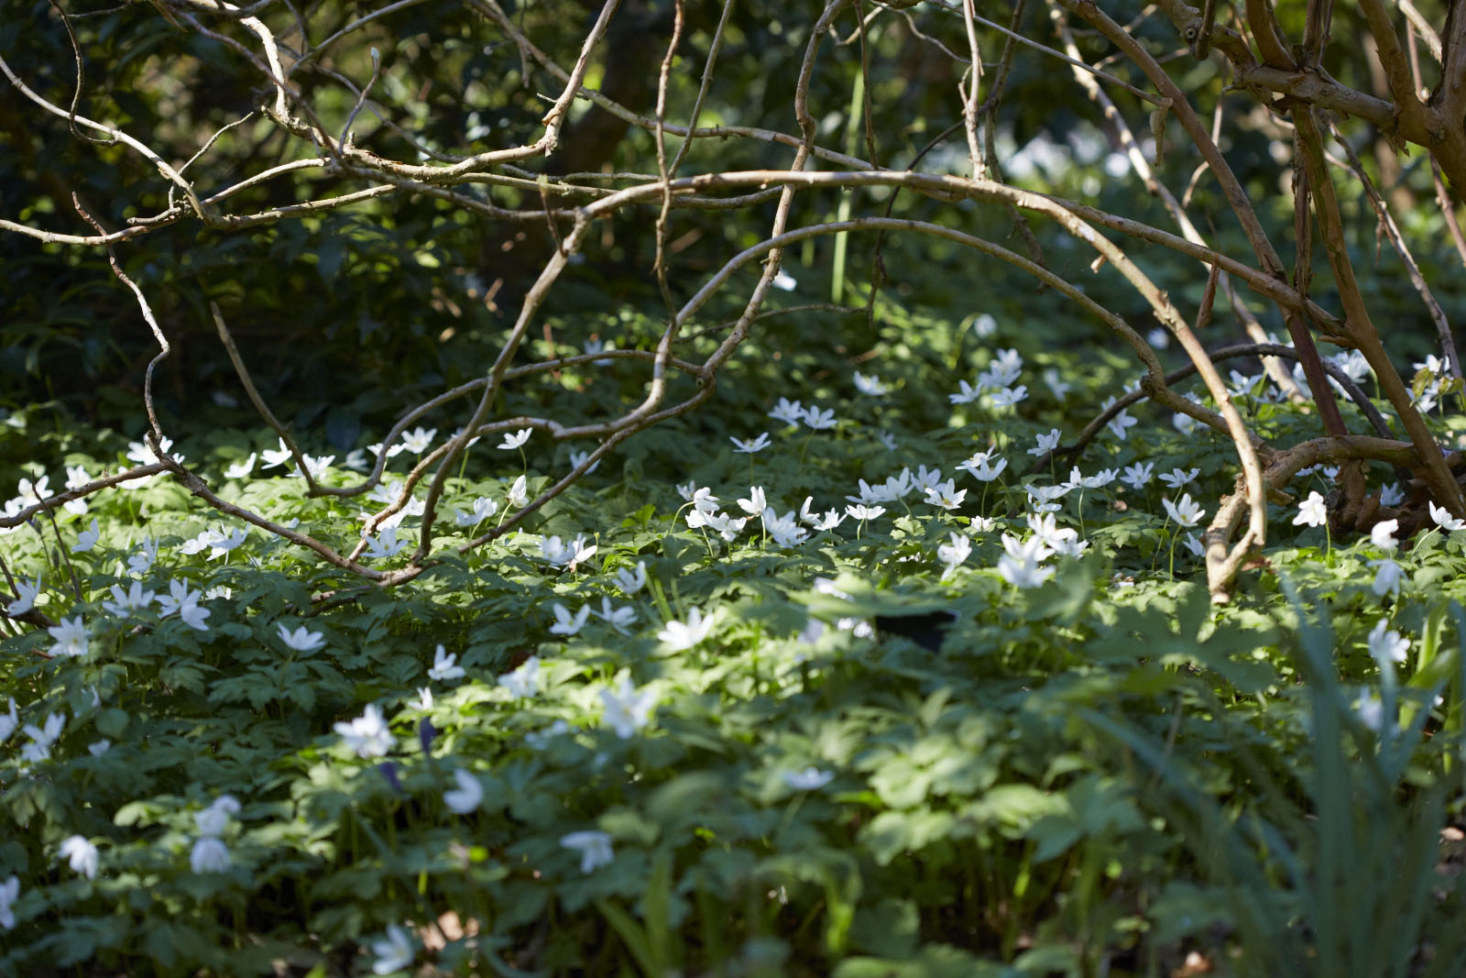 Anemone nemorosa in a wooded glade.